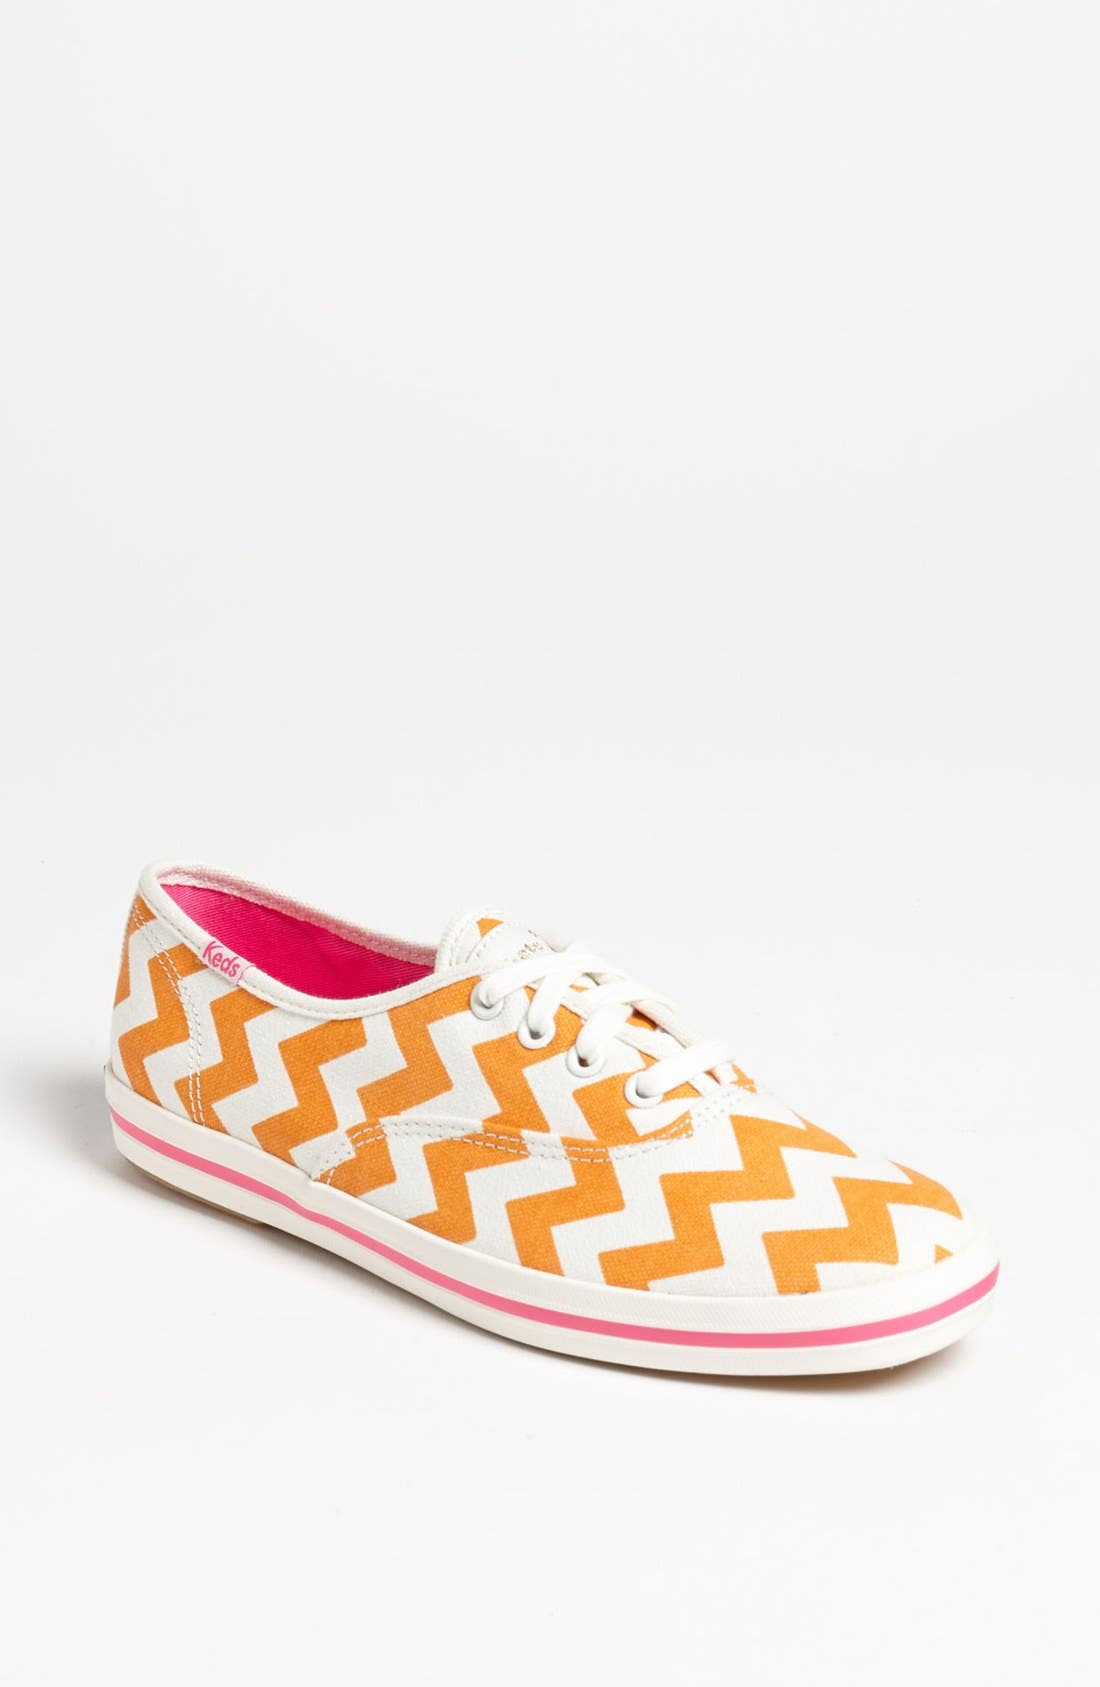 Main Image - Keds® for kate spade new york 'kick' sneaker (Exclusive Color)